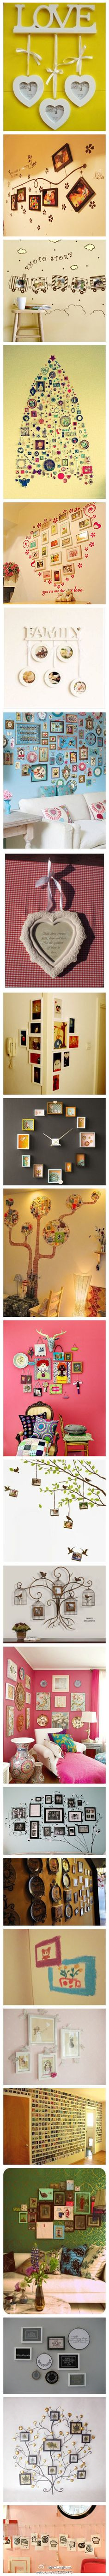 inspiring wall ideas